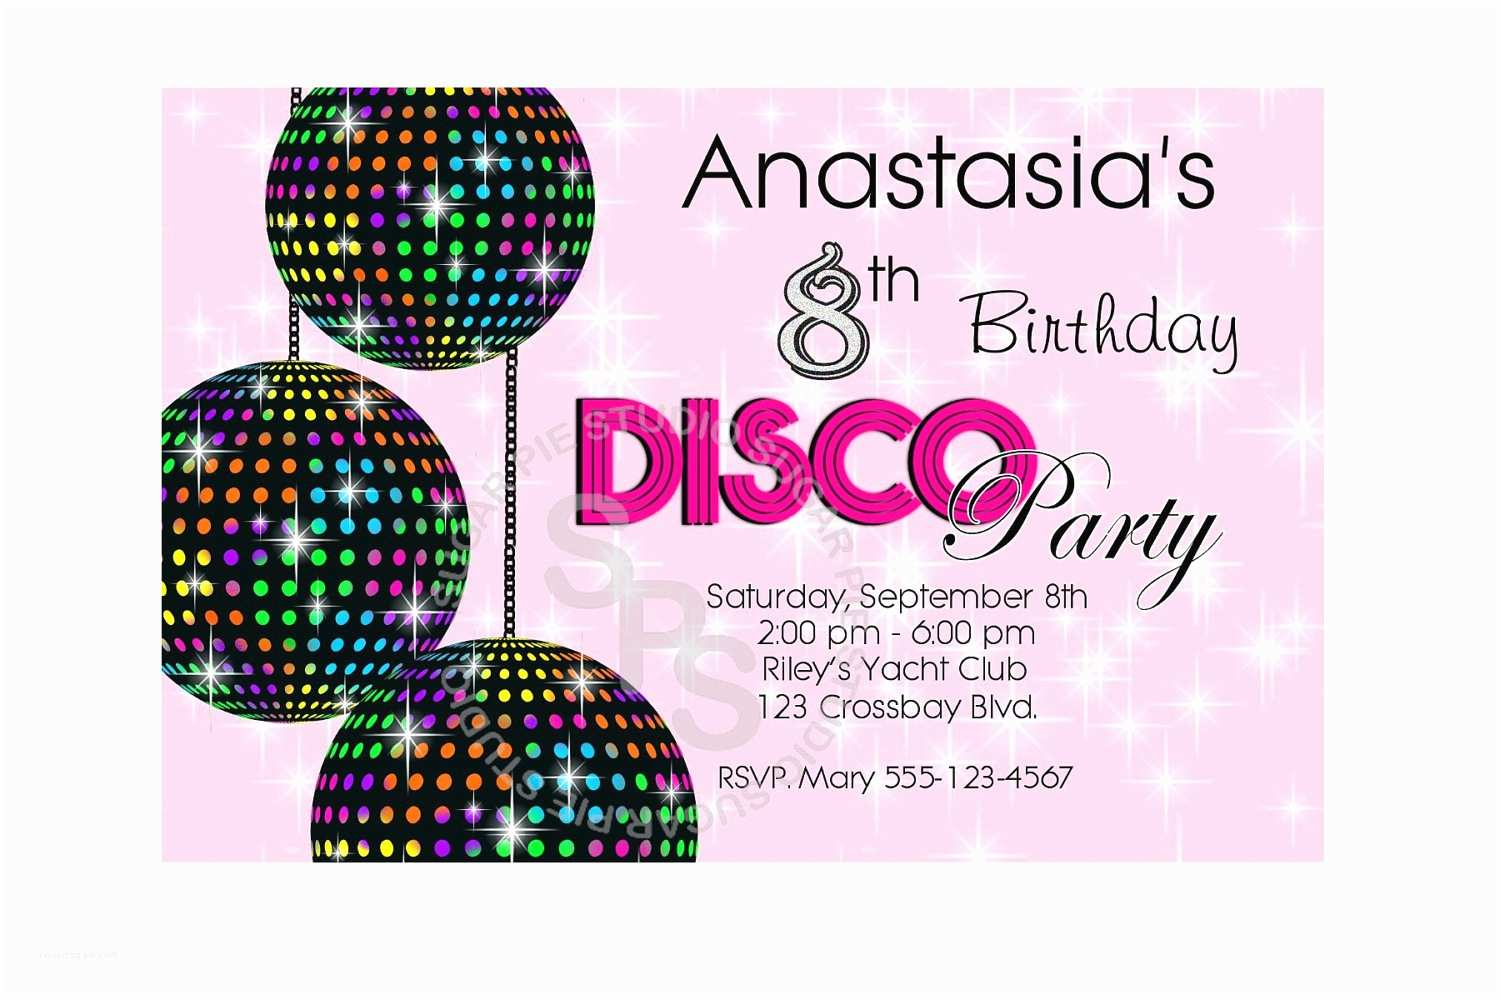 Disco Party Invitations Disco Ball Dance 70s Party Your Photo Girl Boy Birthday Party